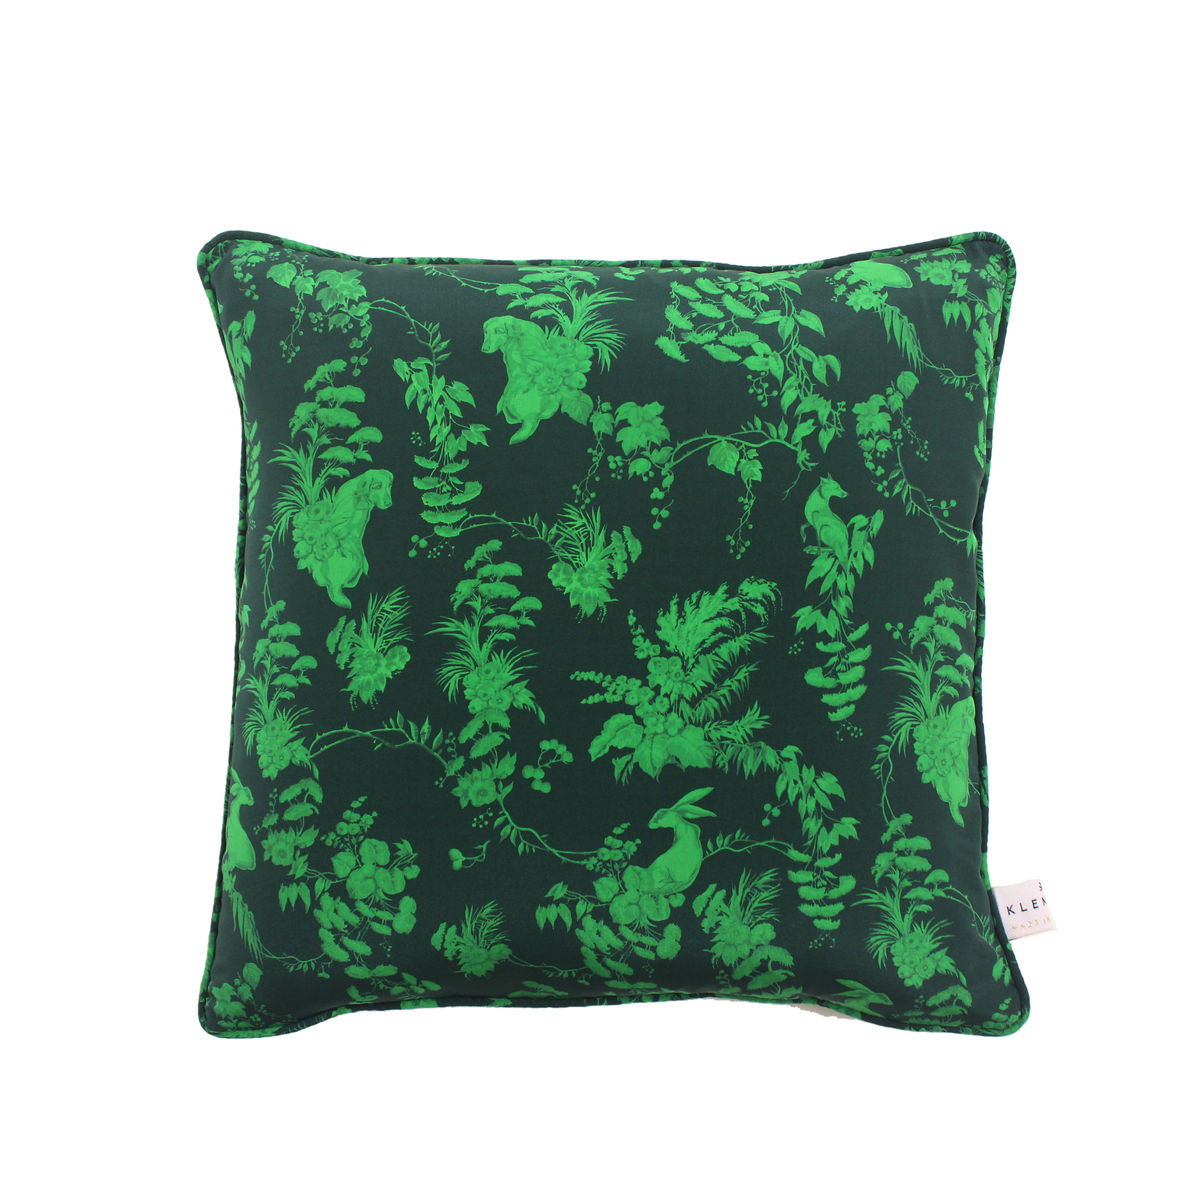 silk cushion, garden puppets, emerald, print 45 x 45cm - product images  of